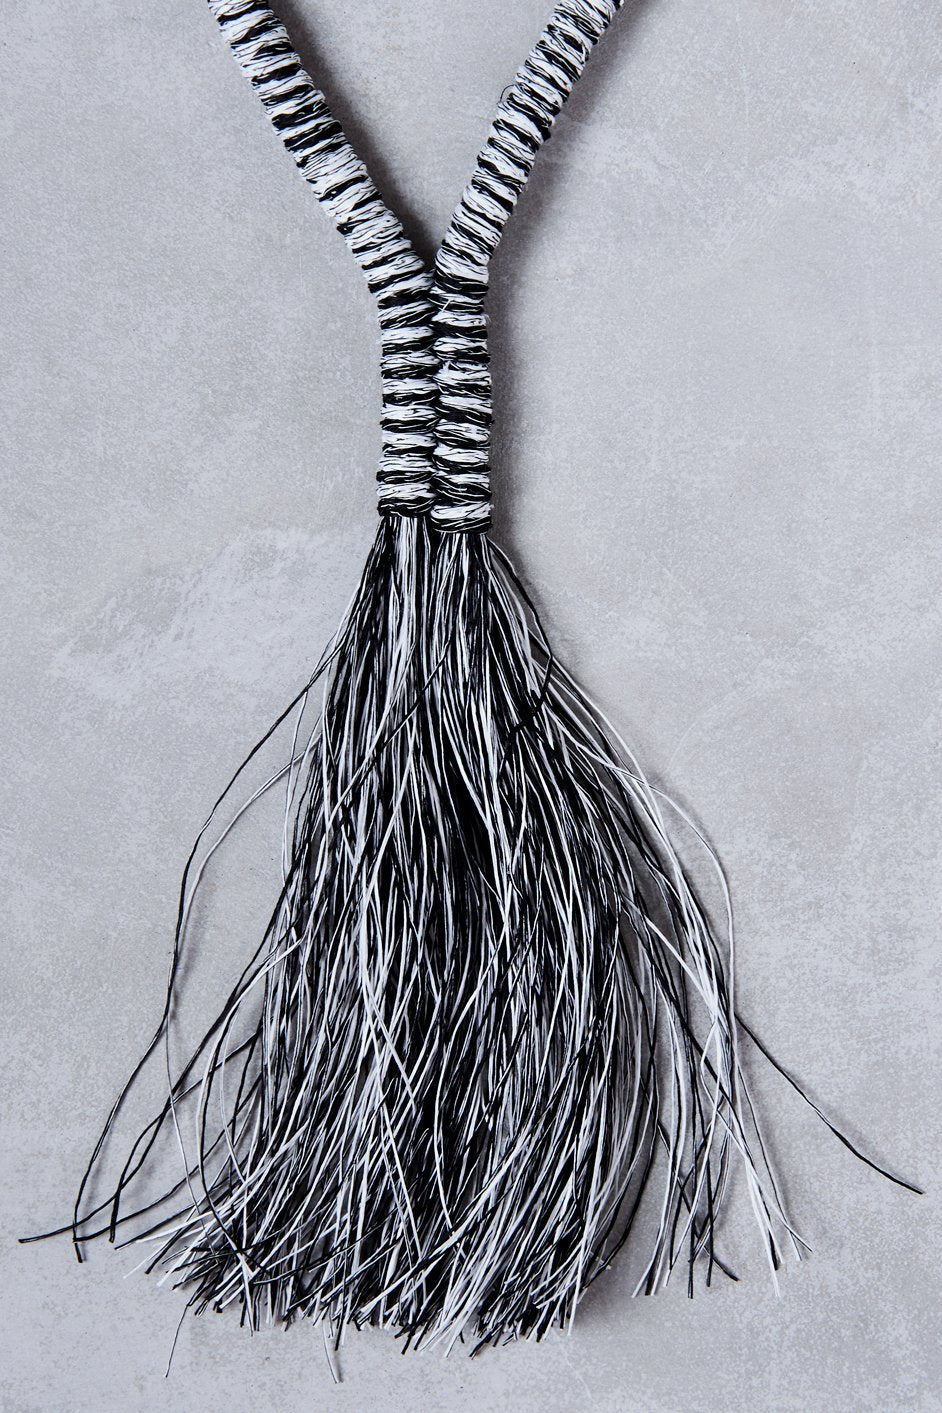 Black & White Tassle Necklace by Beige